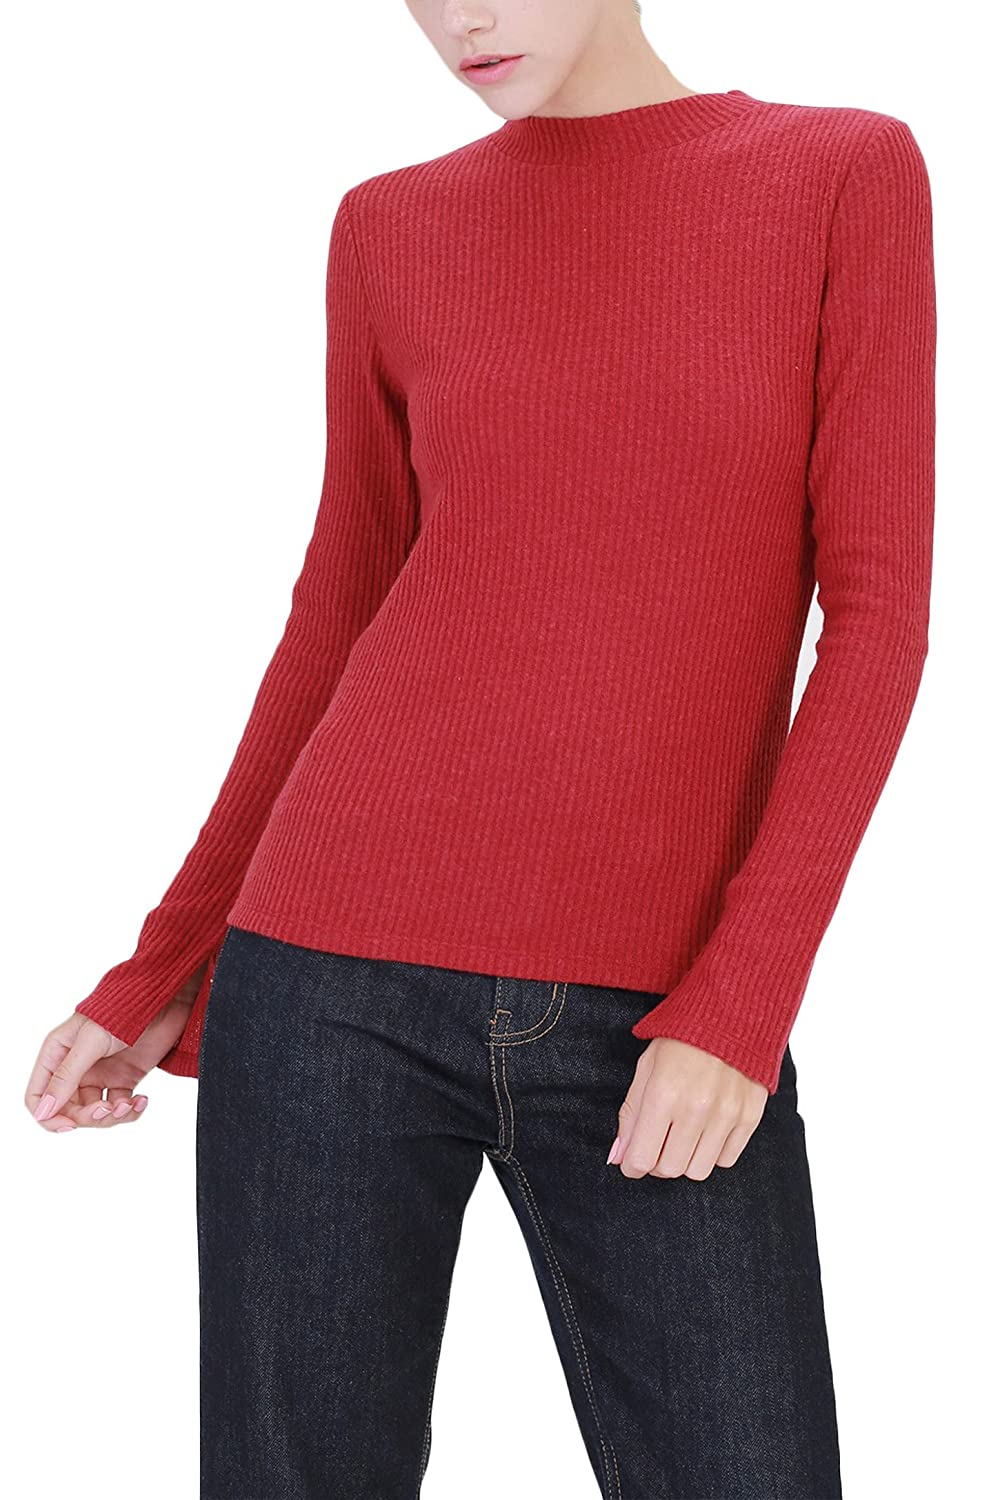 TL Women's Stretchy Solid Basic Long Sleeve Mock Turtleneck Sweater Top TL-MOK2